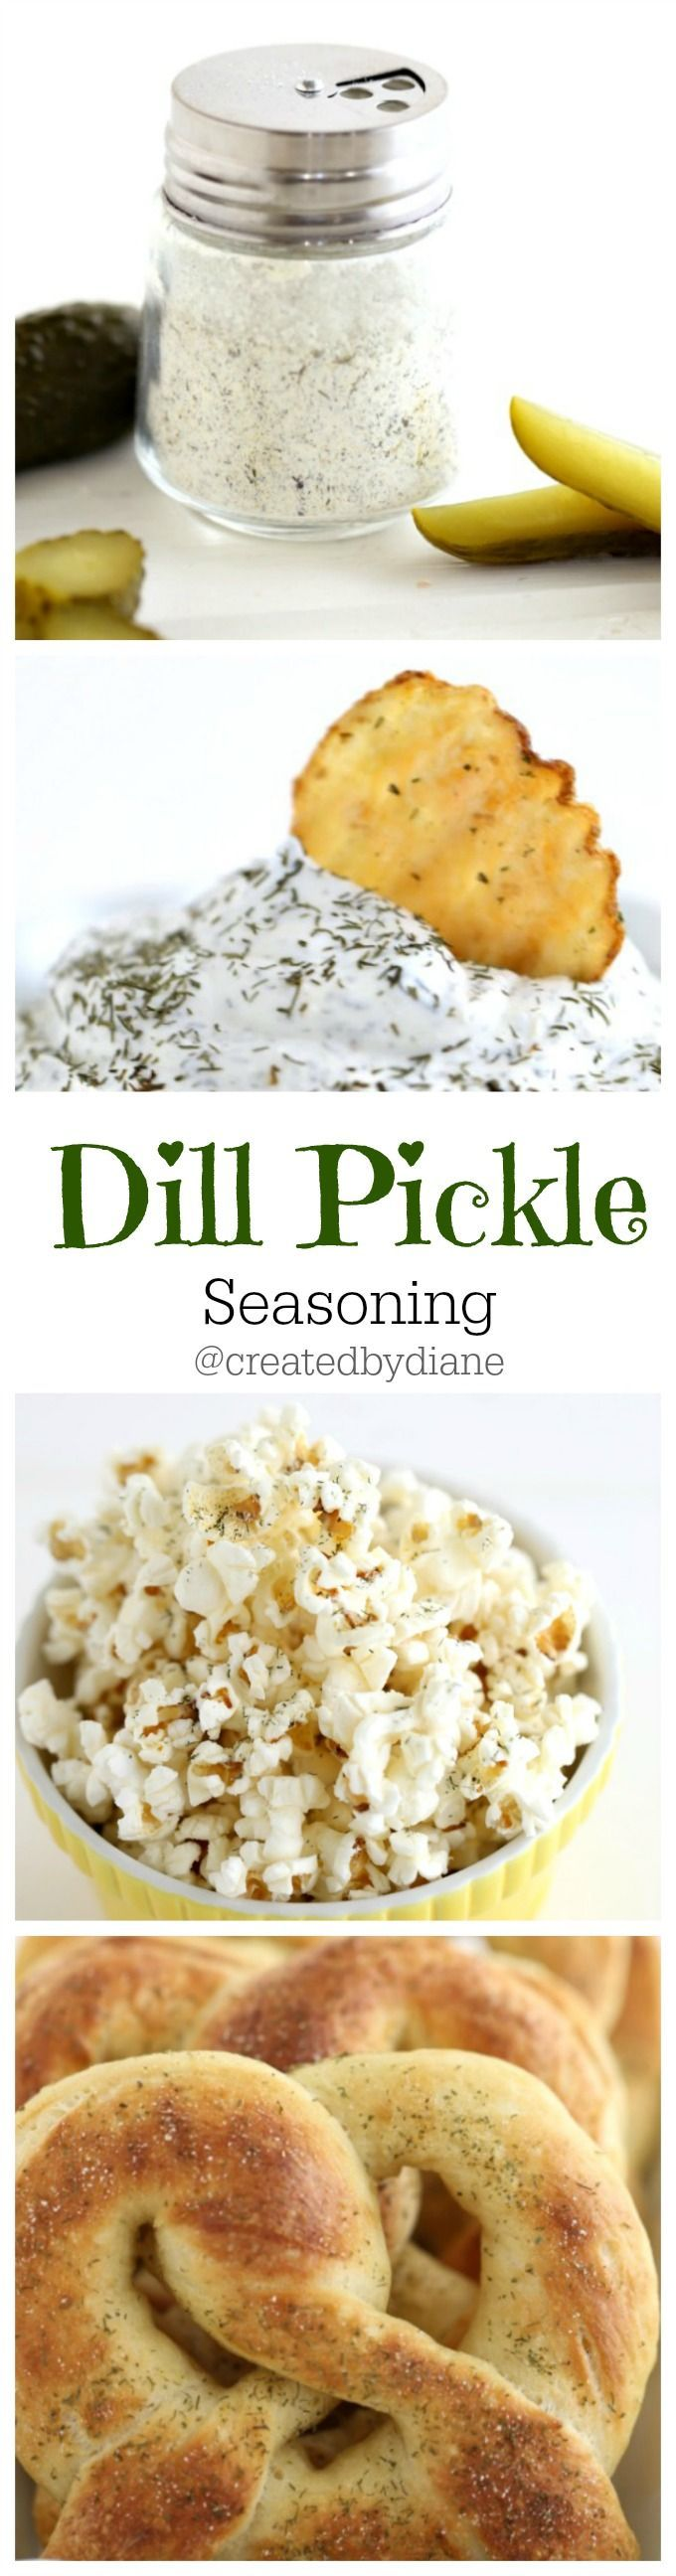 Dill Pickle recipes /createdbydiane/